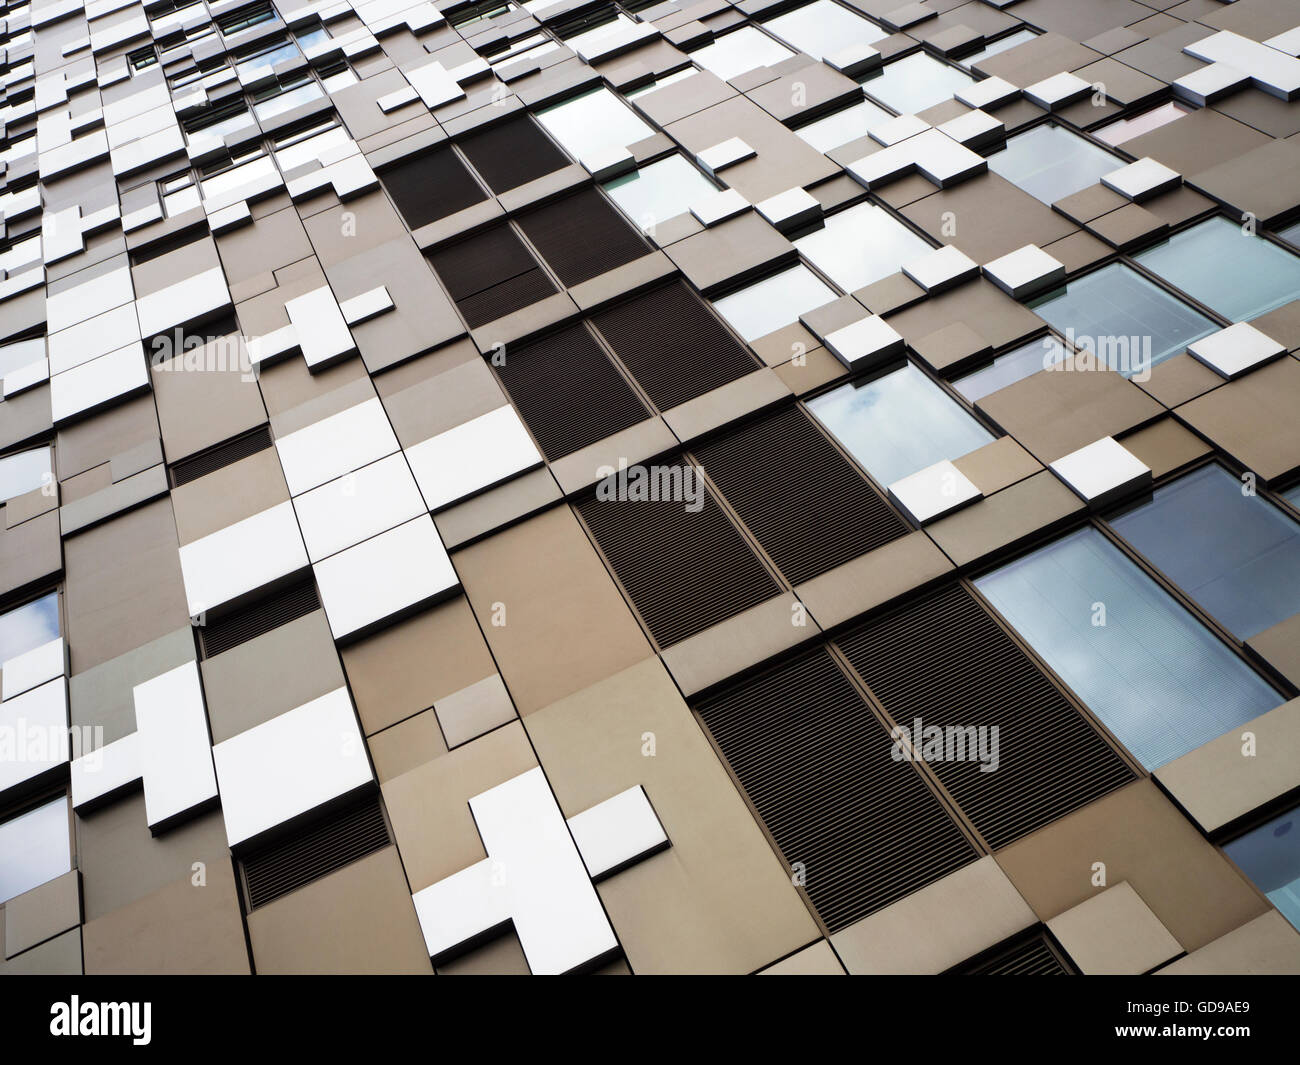 The Cube Office Retail and Residential Building in Birmingham West Midlands England - Stock Image